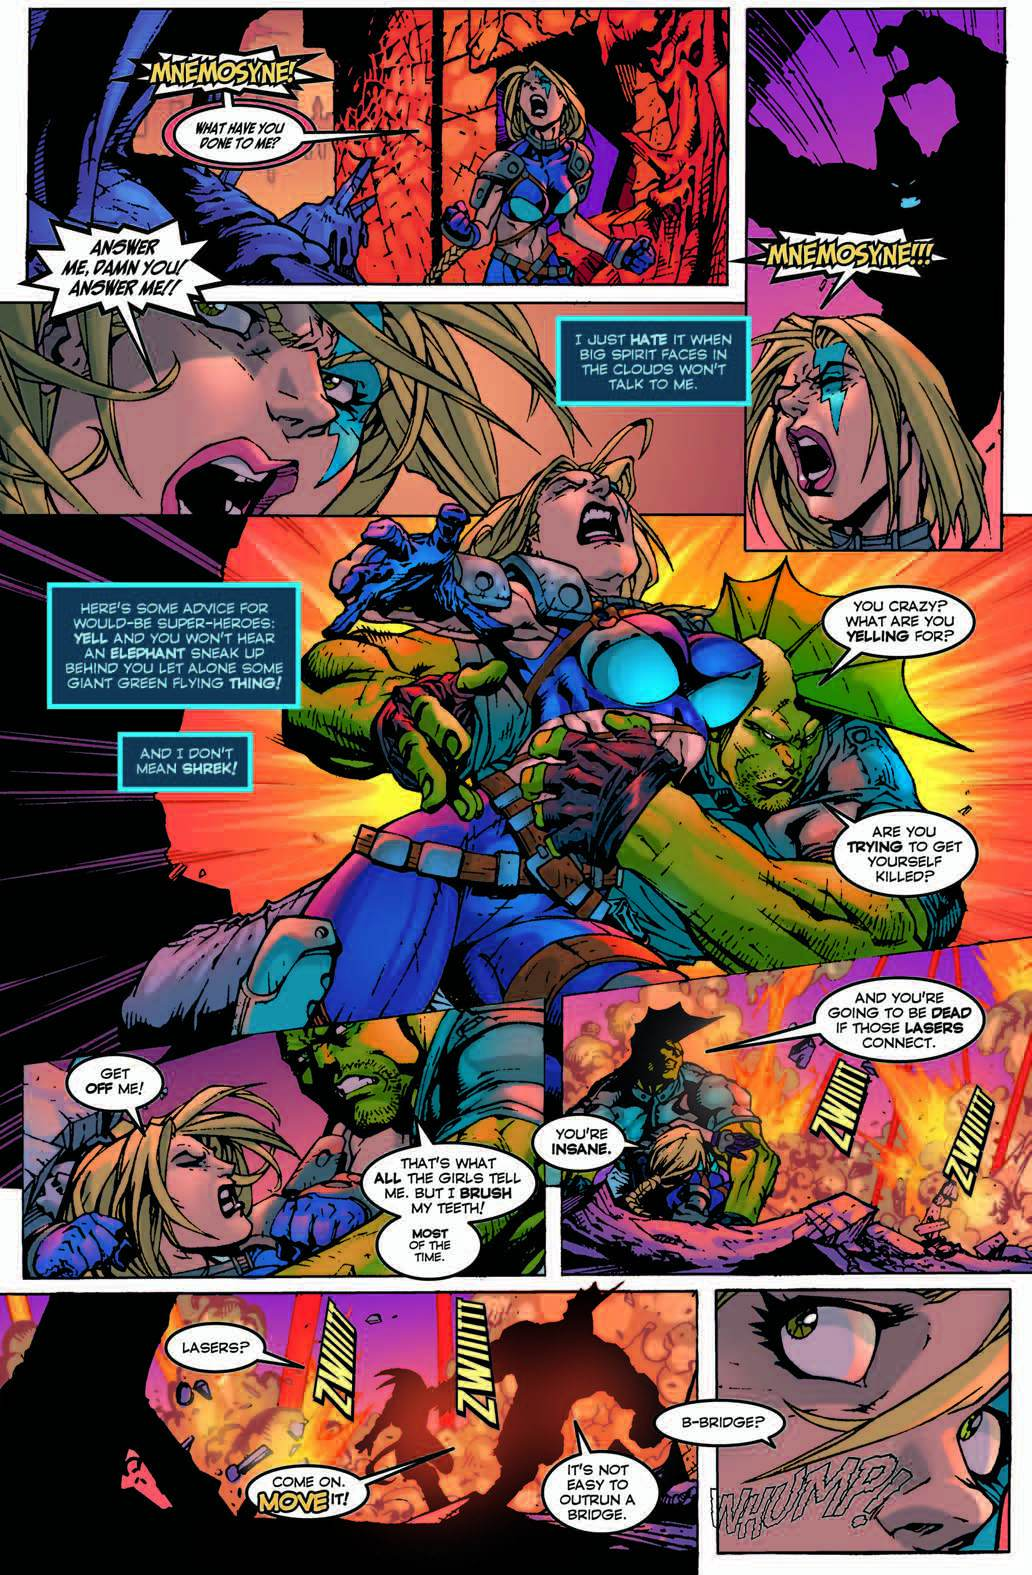 10th-Muse-Vol-2-the-Image-Comics-Run-Part-2-Image-04